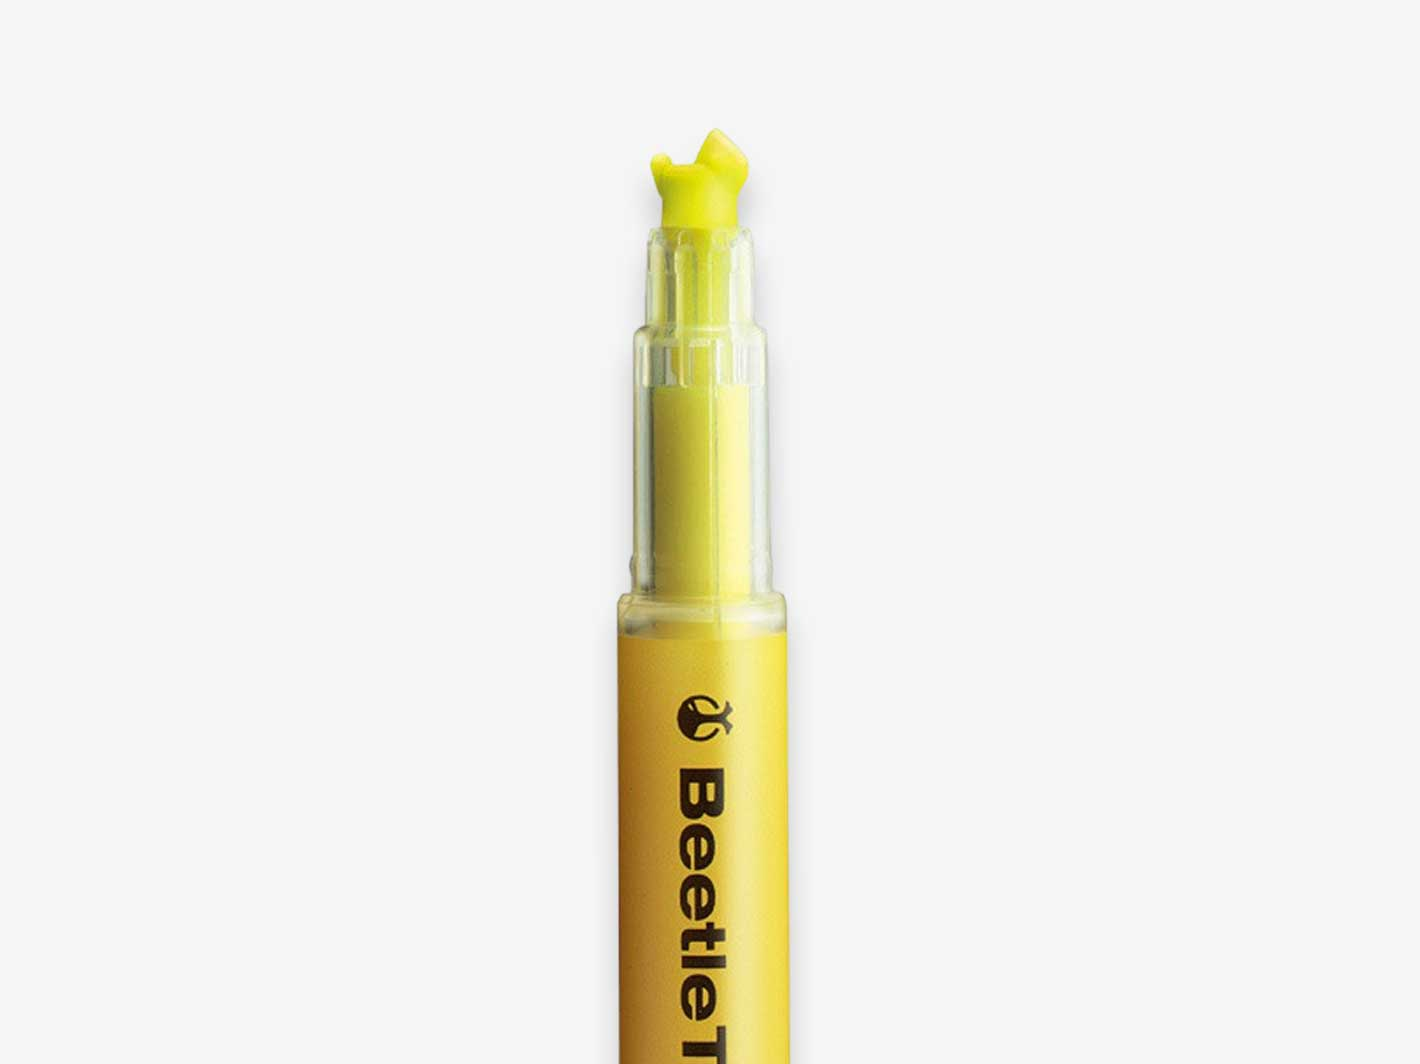 Beetletip 3-way Marker Yellow